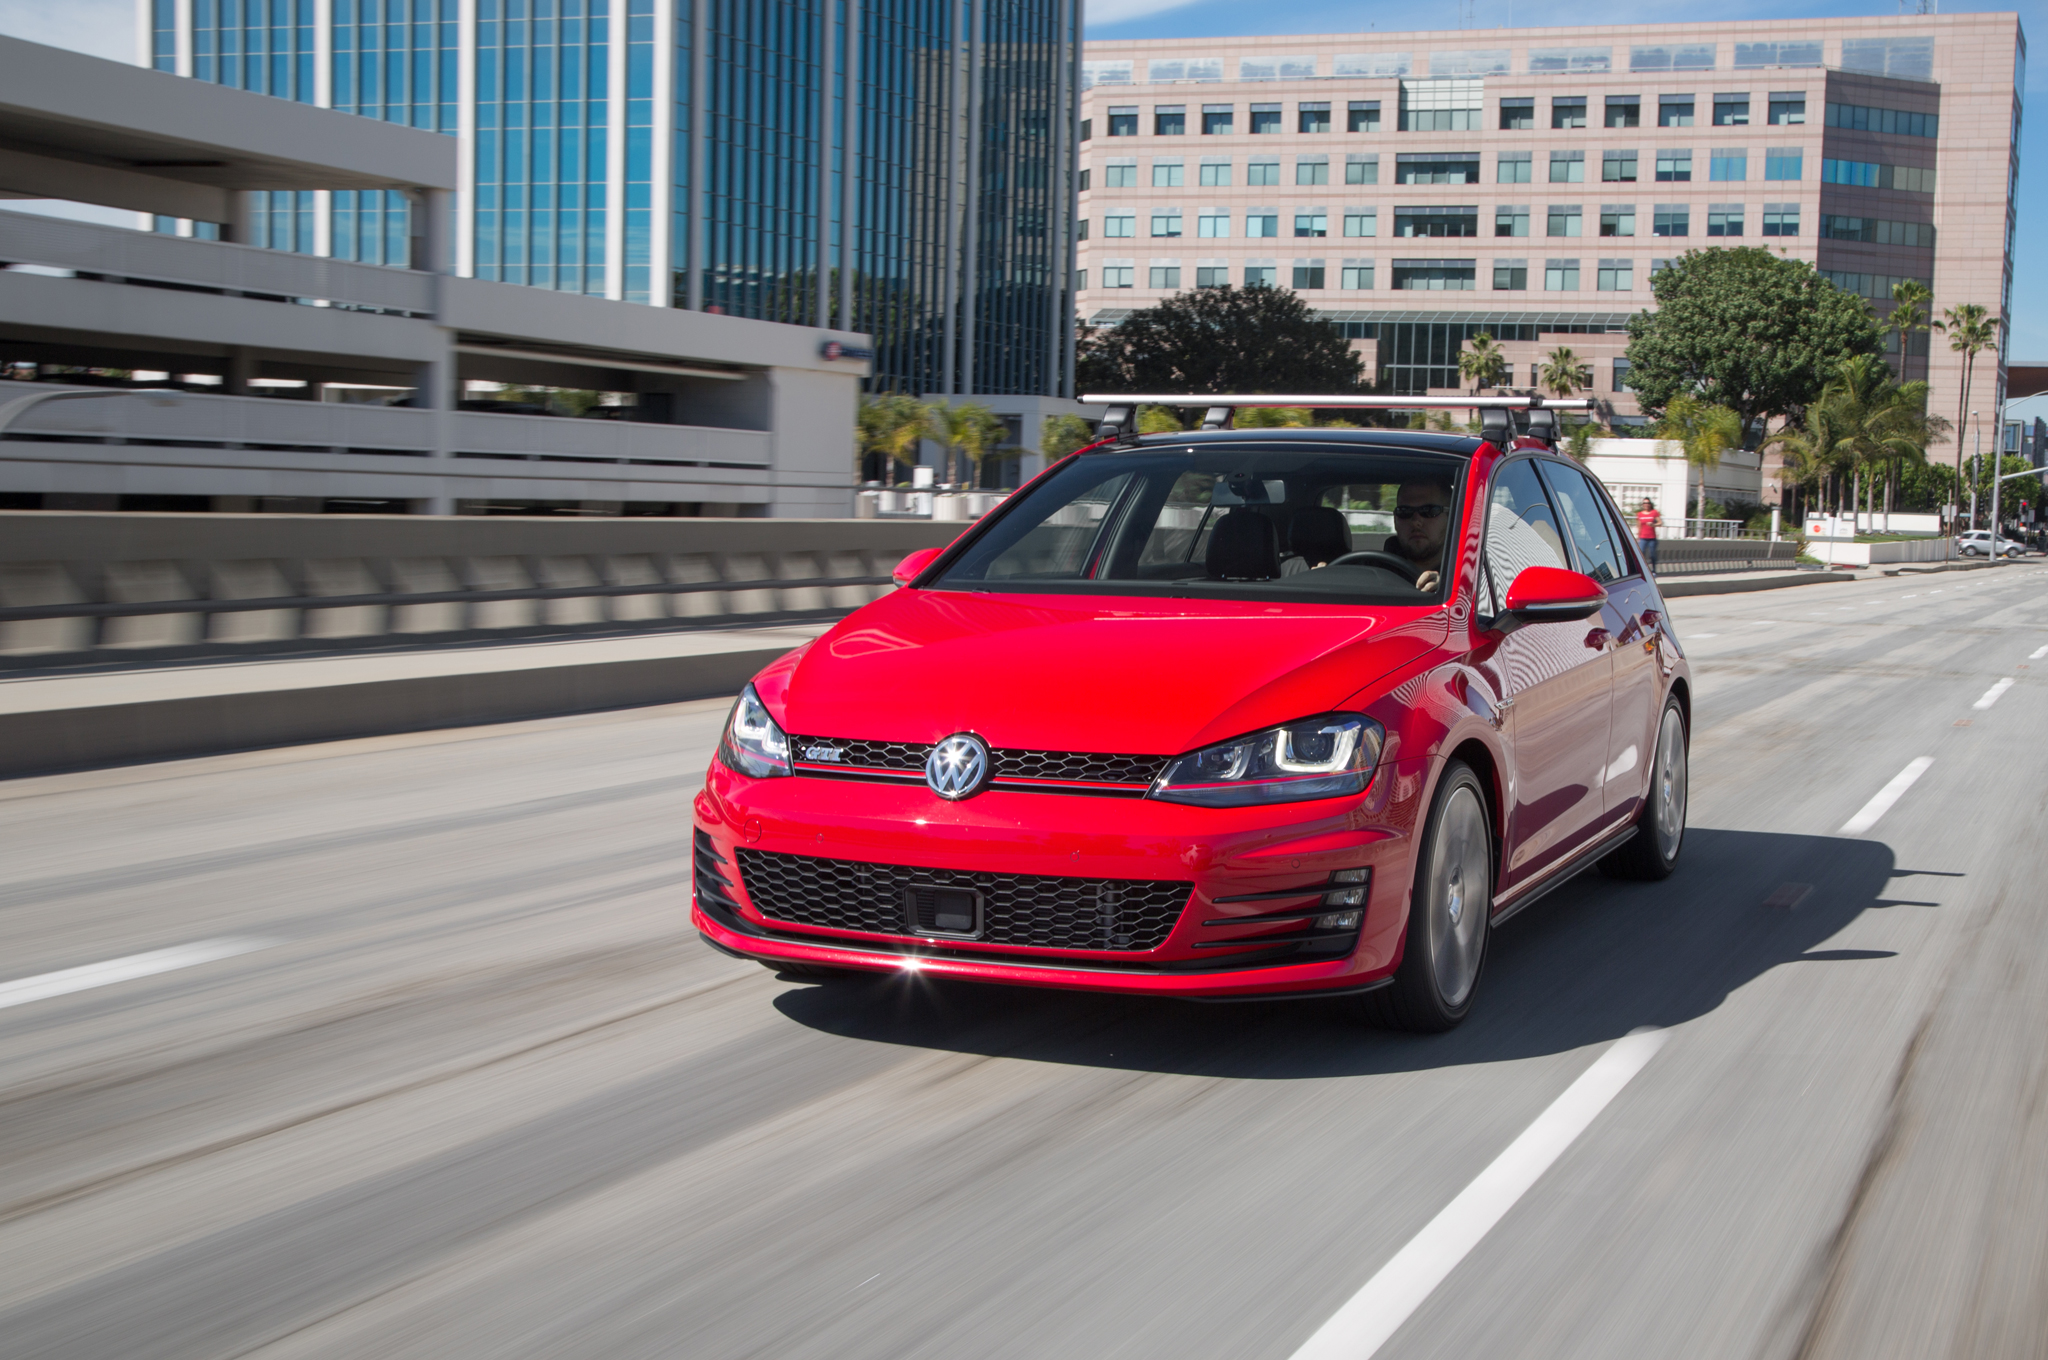 2015 Volkswagen Golf Gti Red With Roof Rack (View 25 of 55)